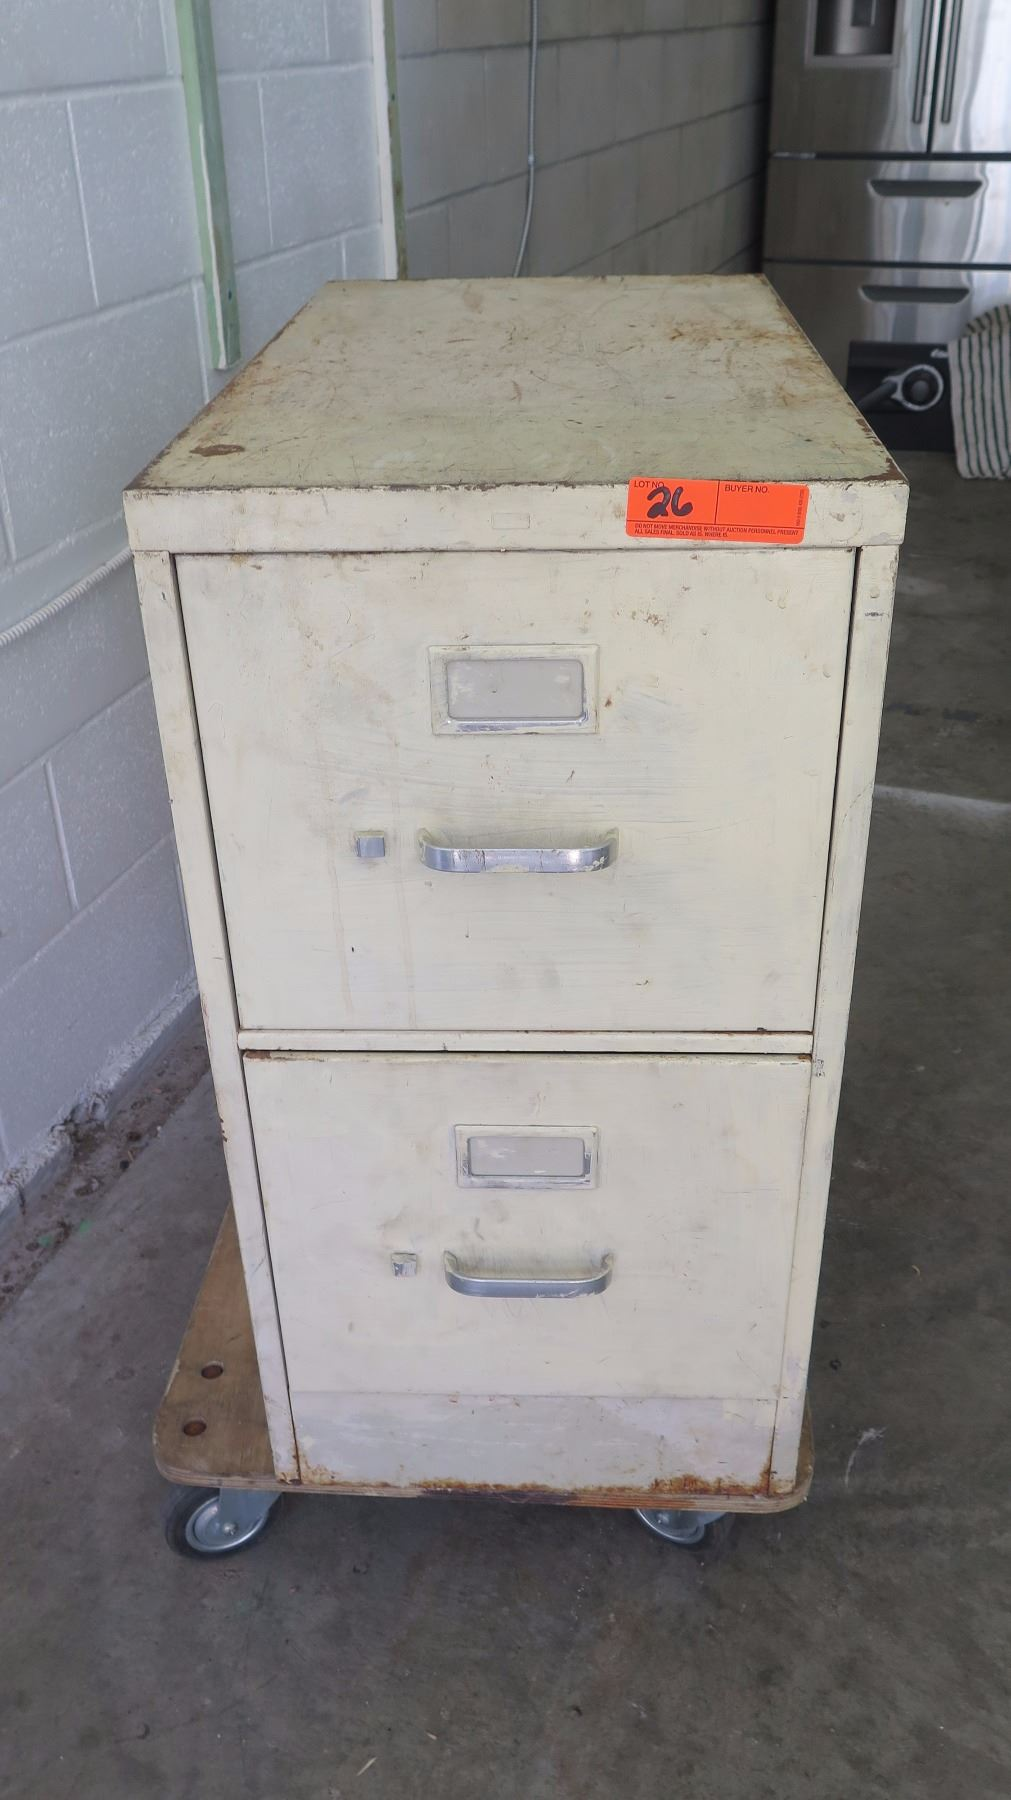 Image 1 : 5 Drawer Metal File Cabinet W/ Misc.